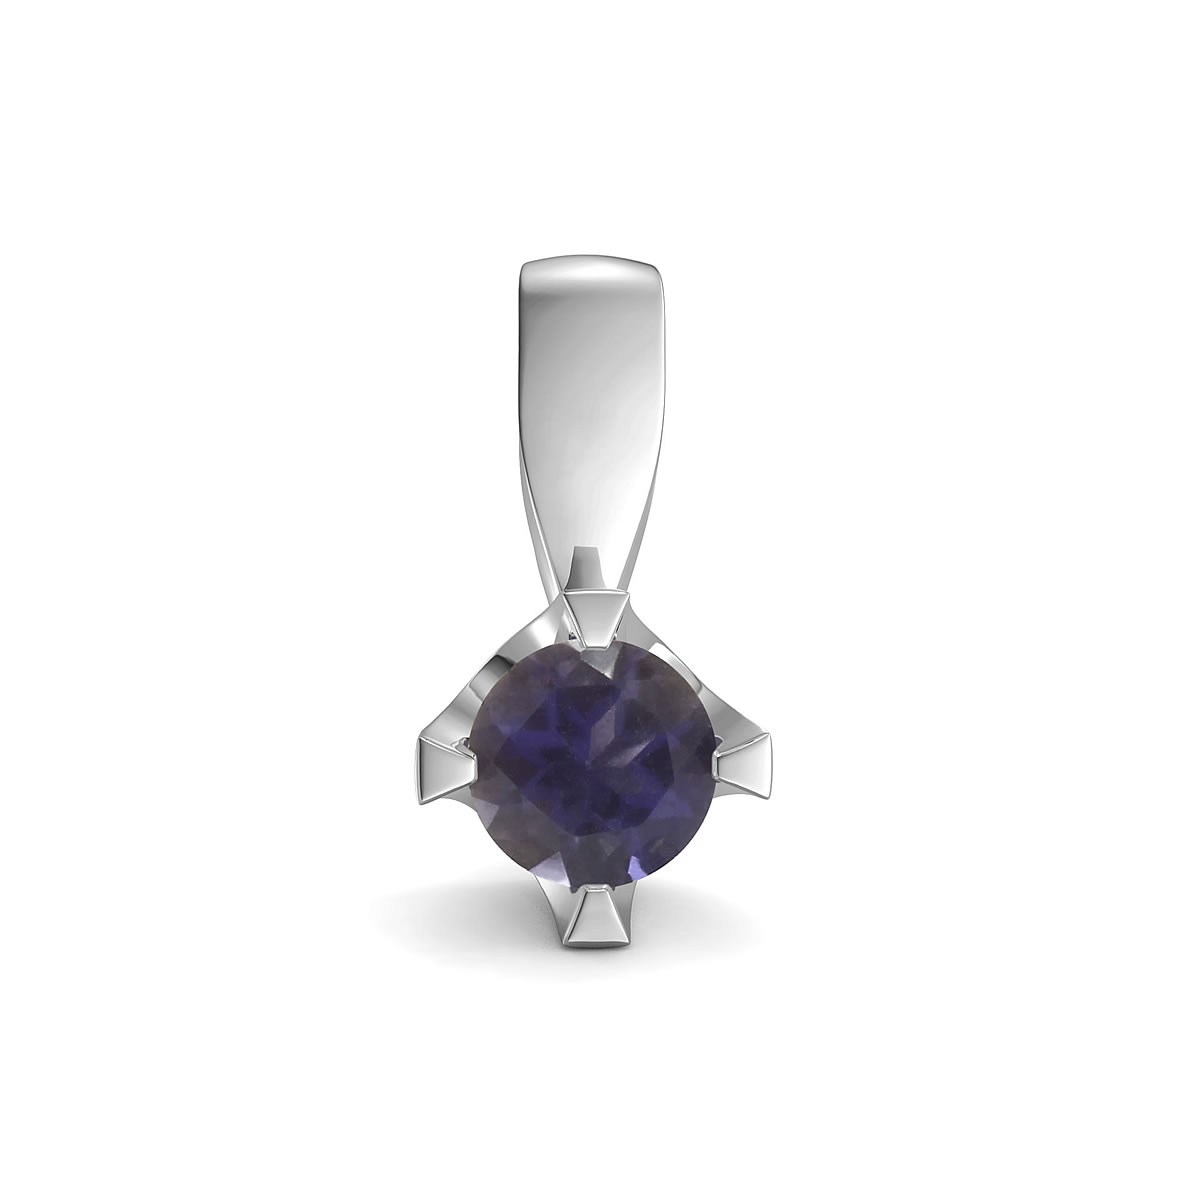 Elegant pendant in sterling silver with a iolite